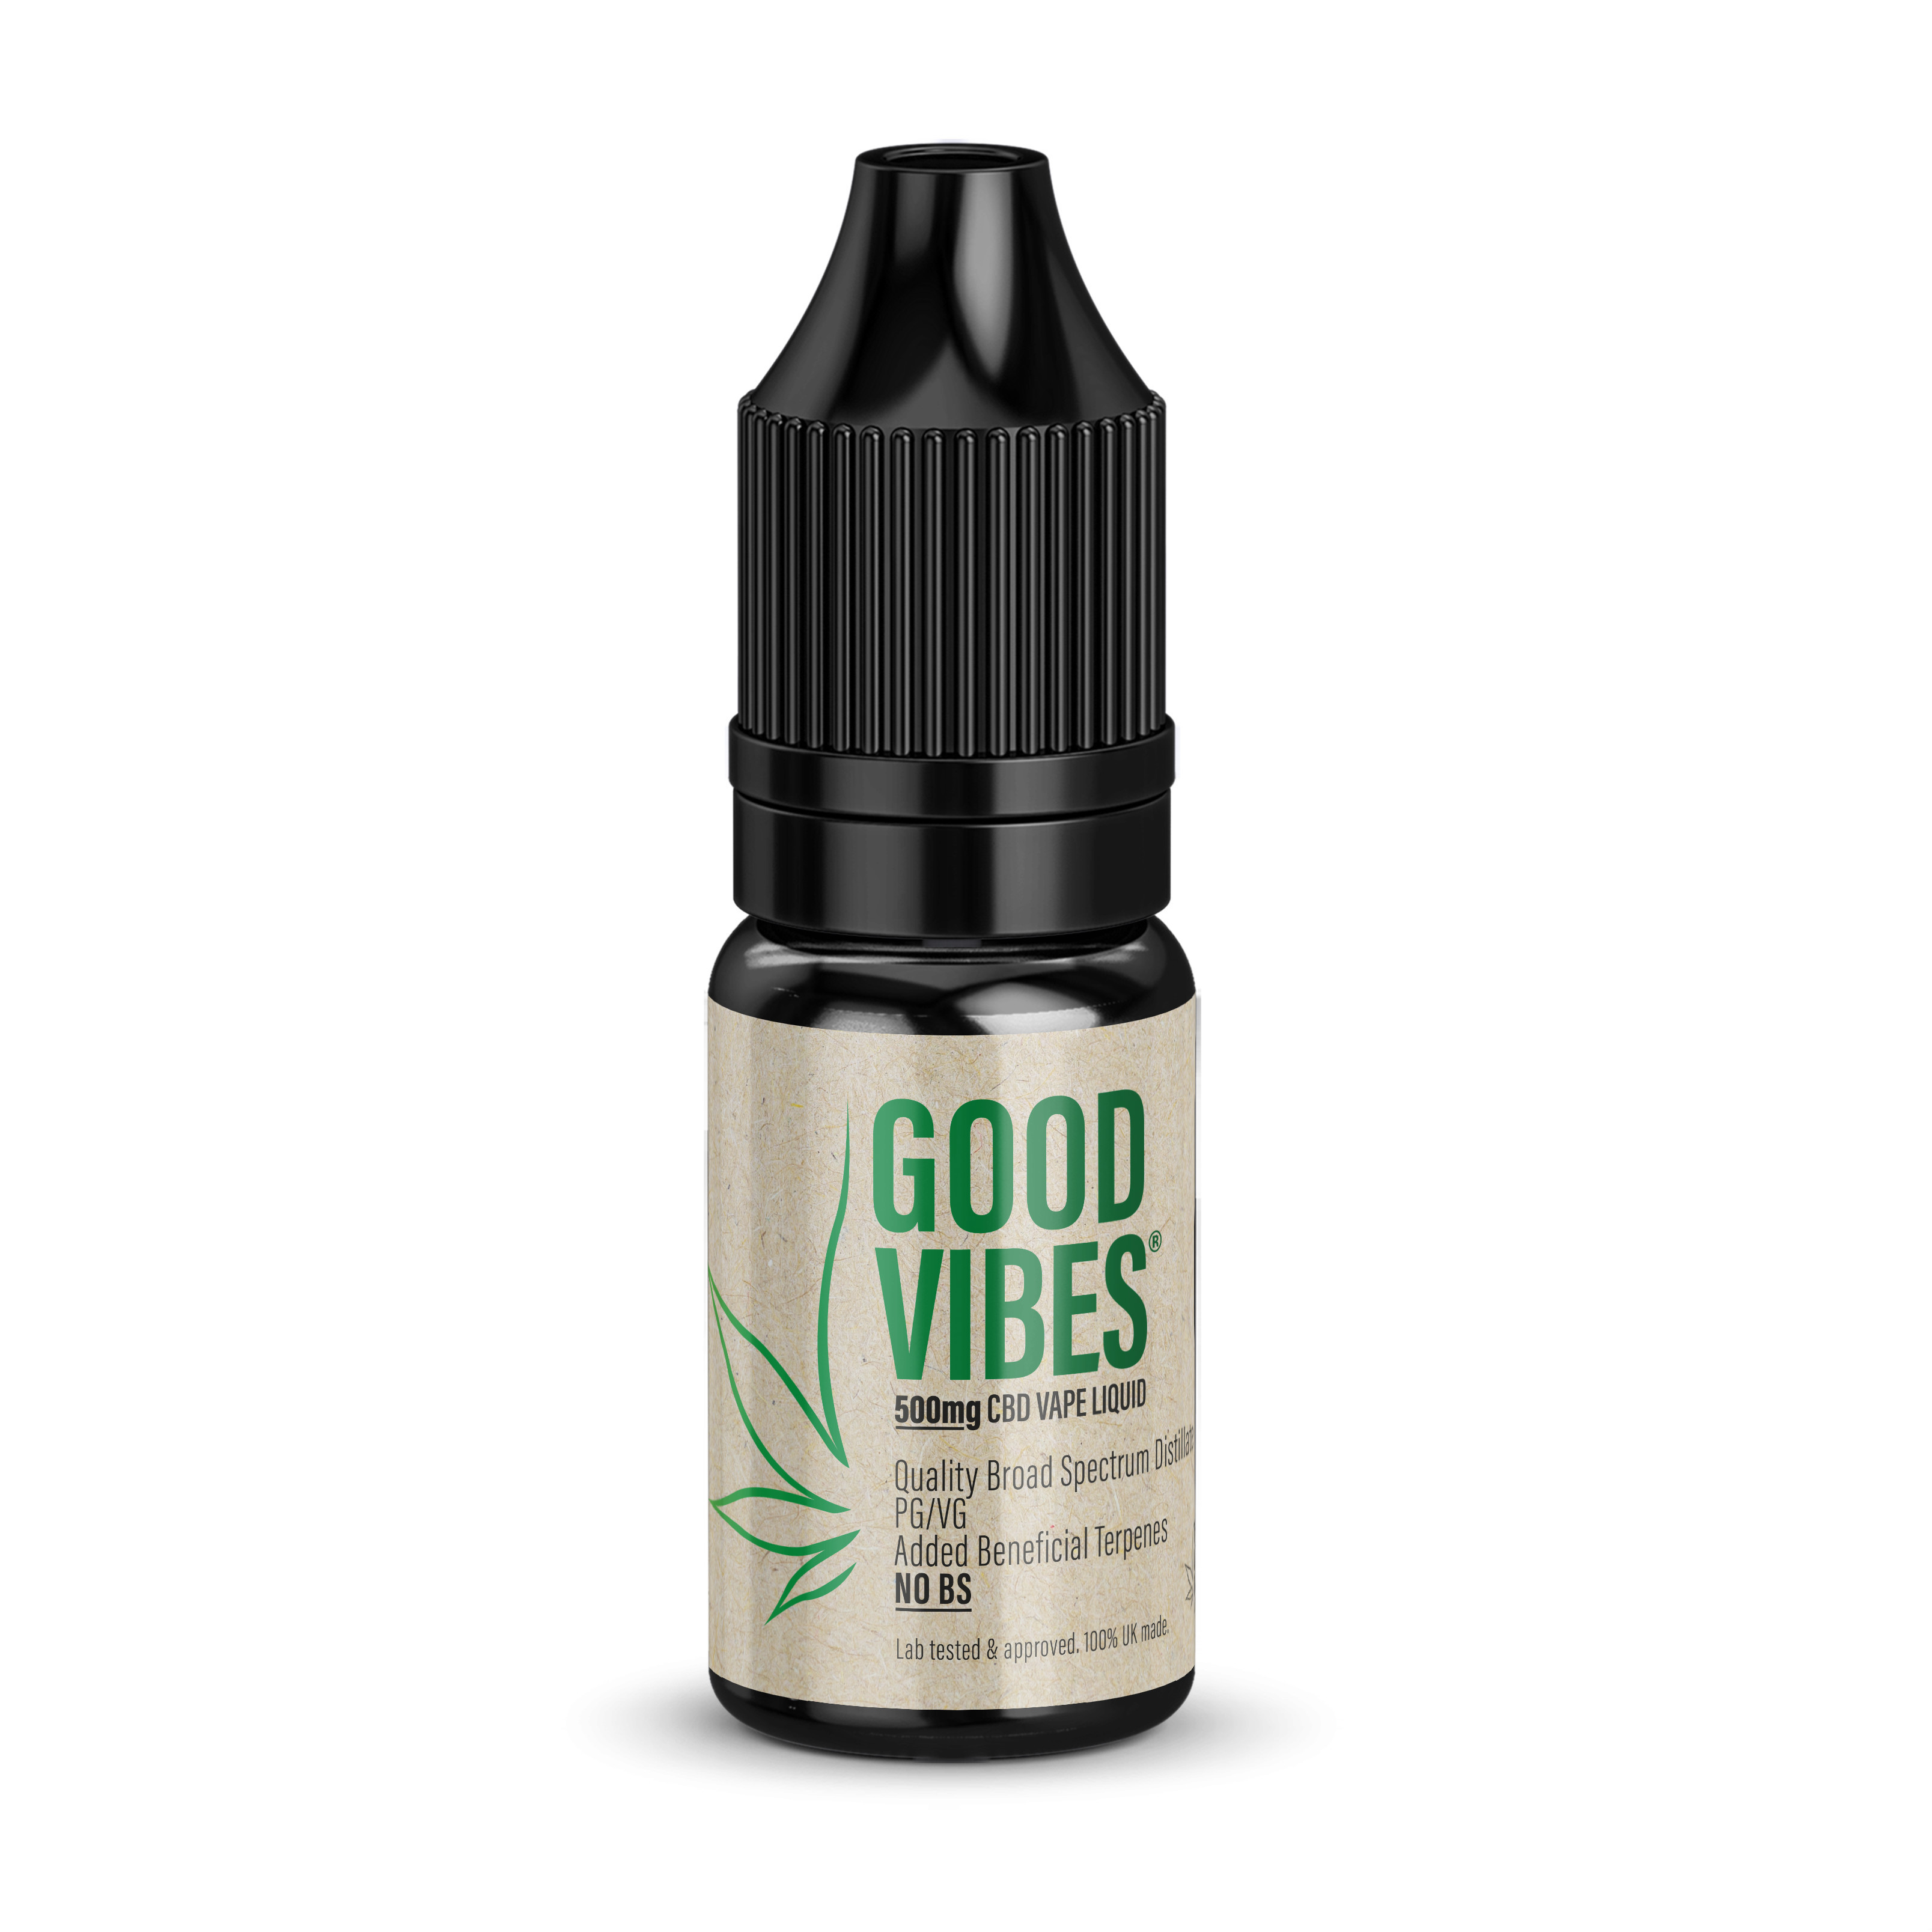 Good Vibes E-Liquid 500mg